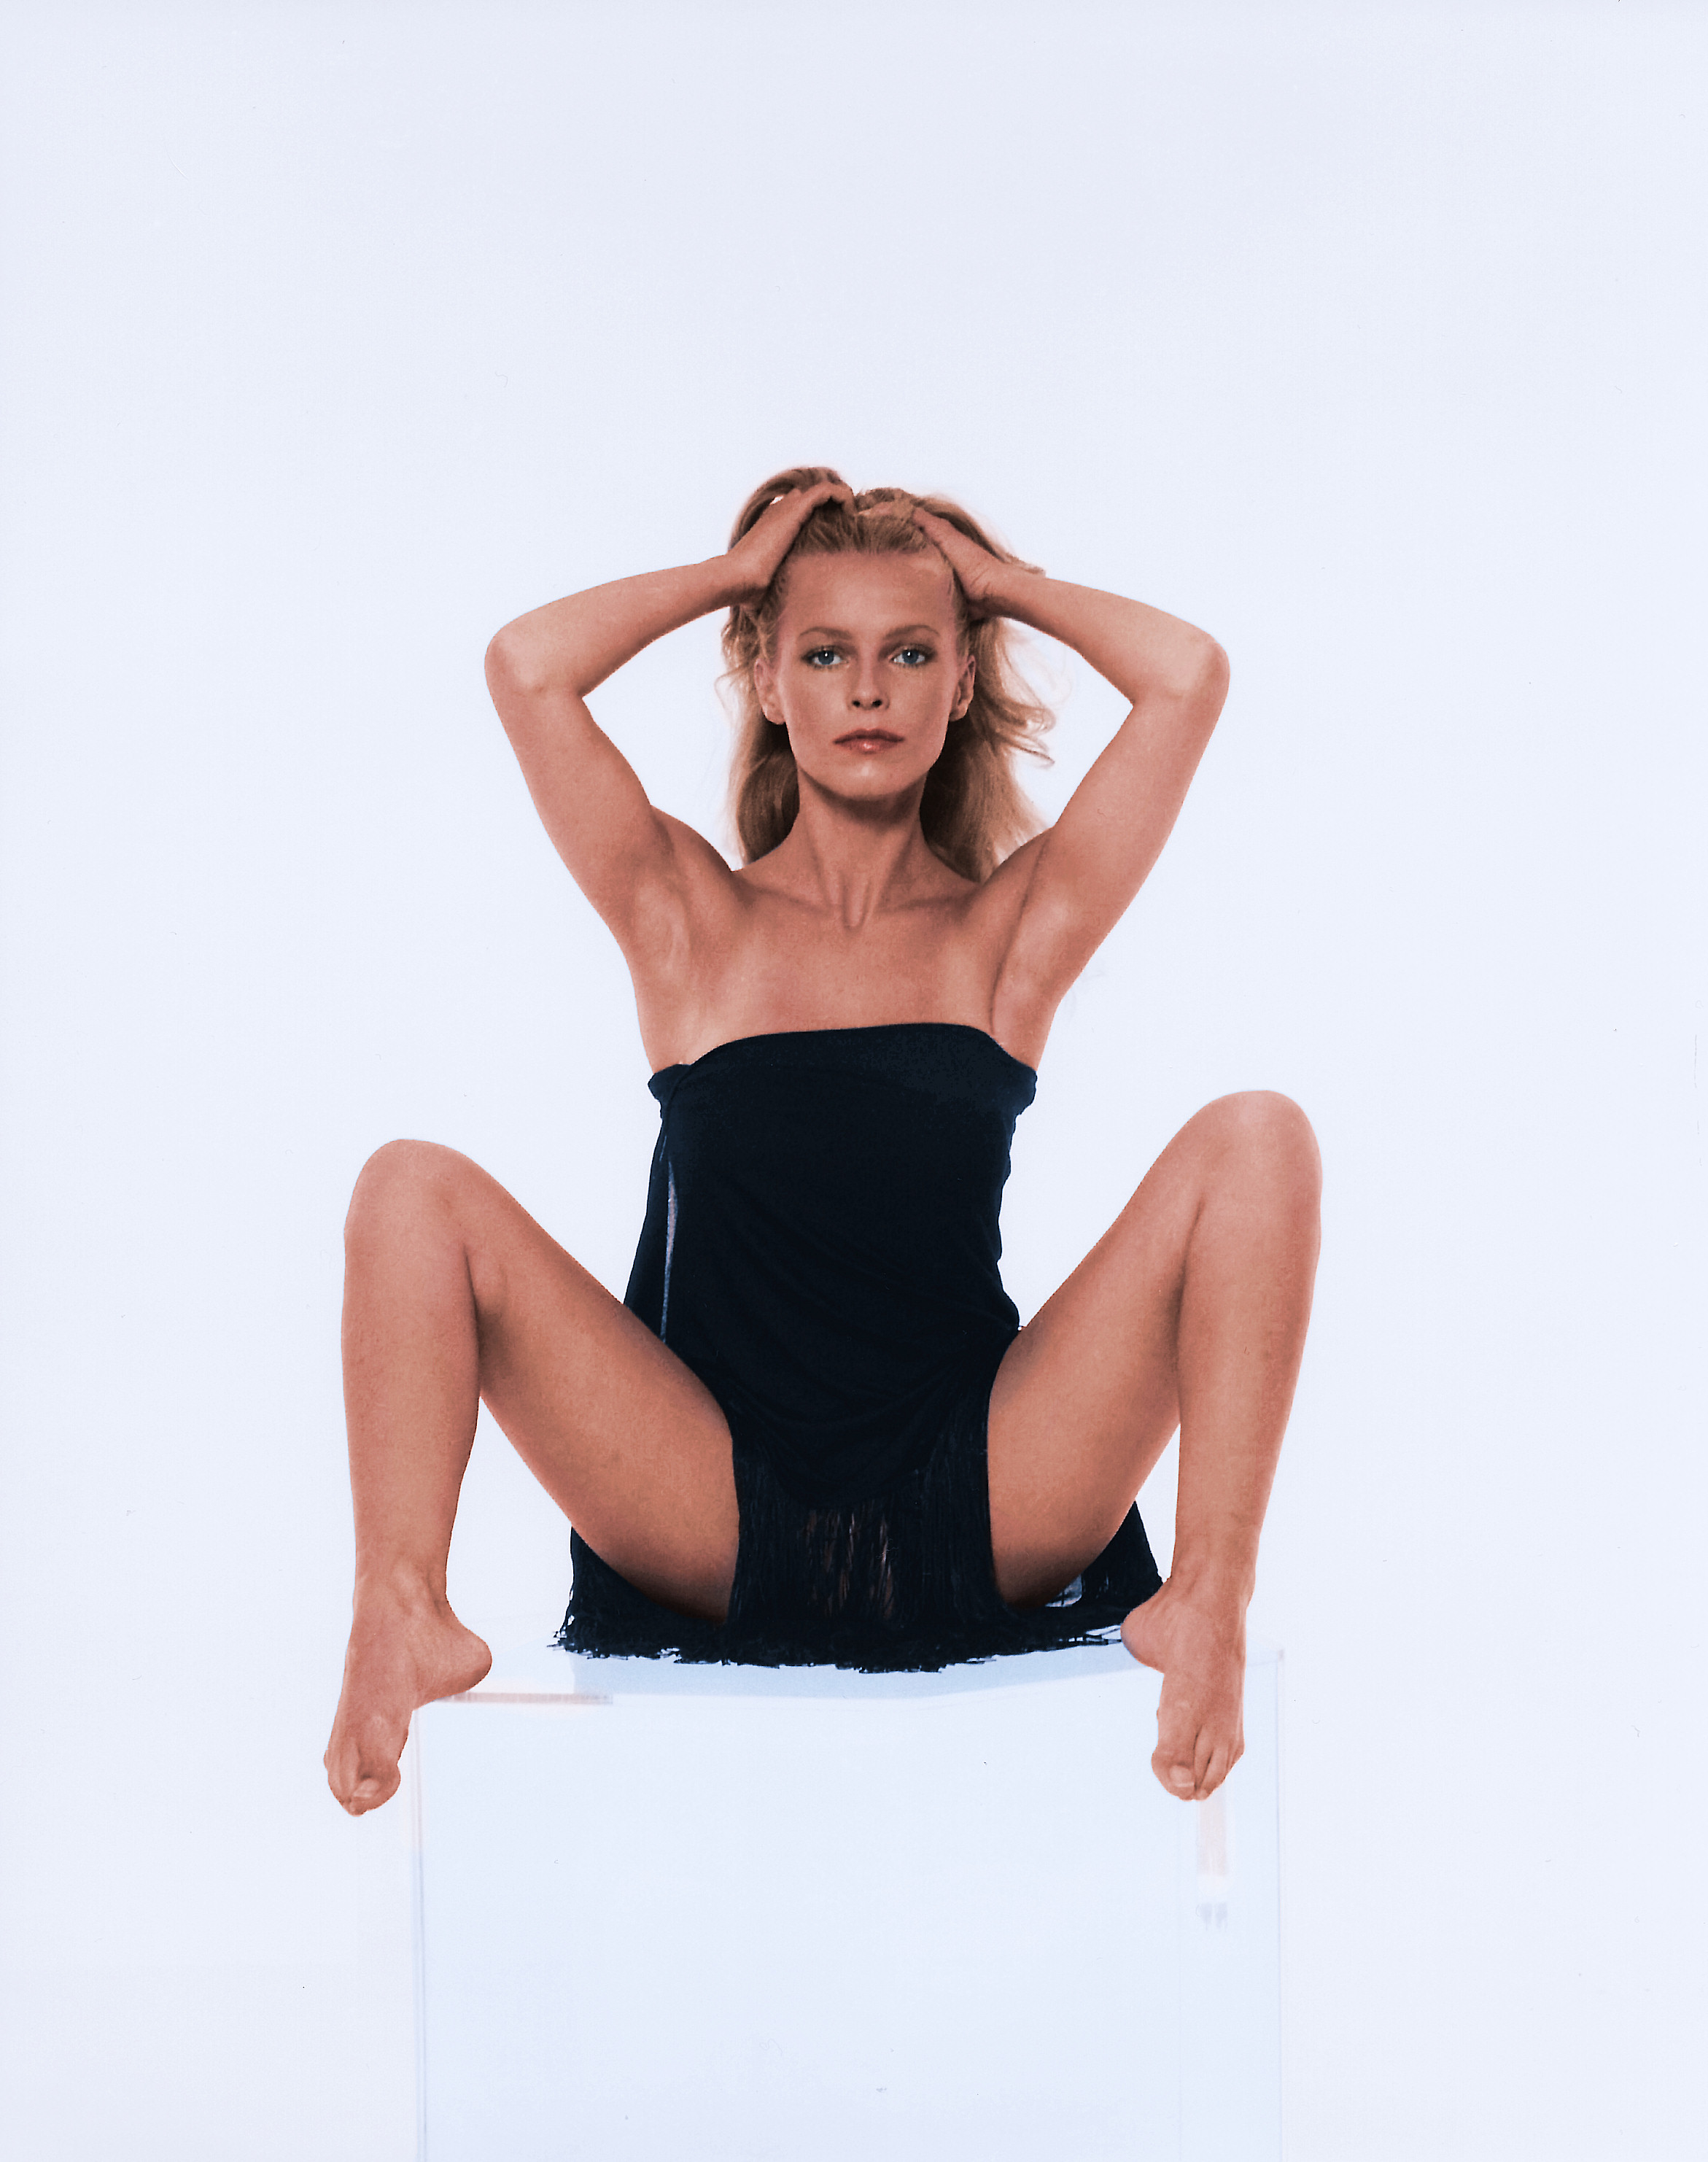 C c catch nude erotic photos